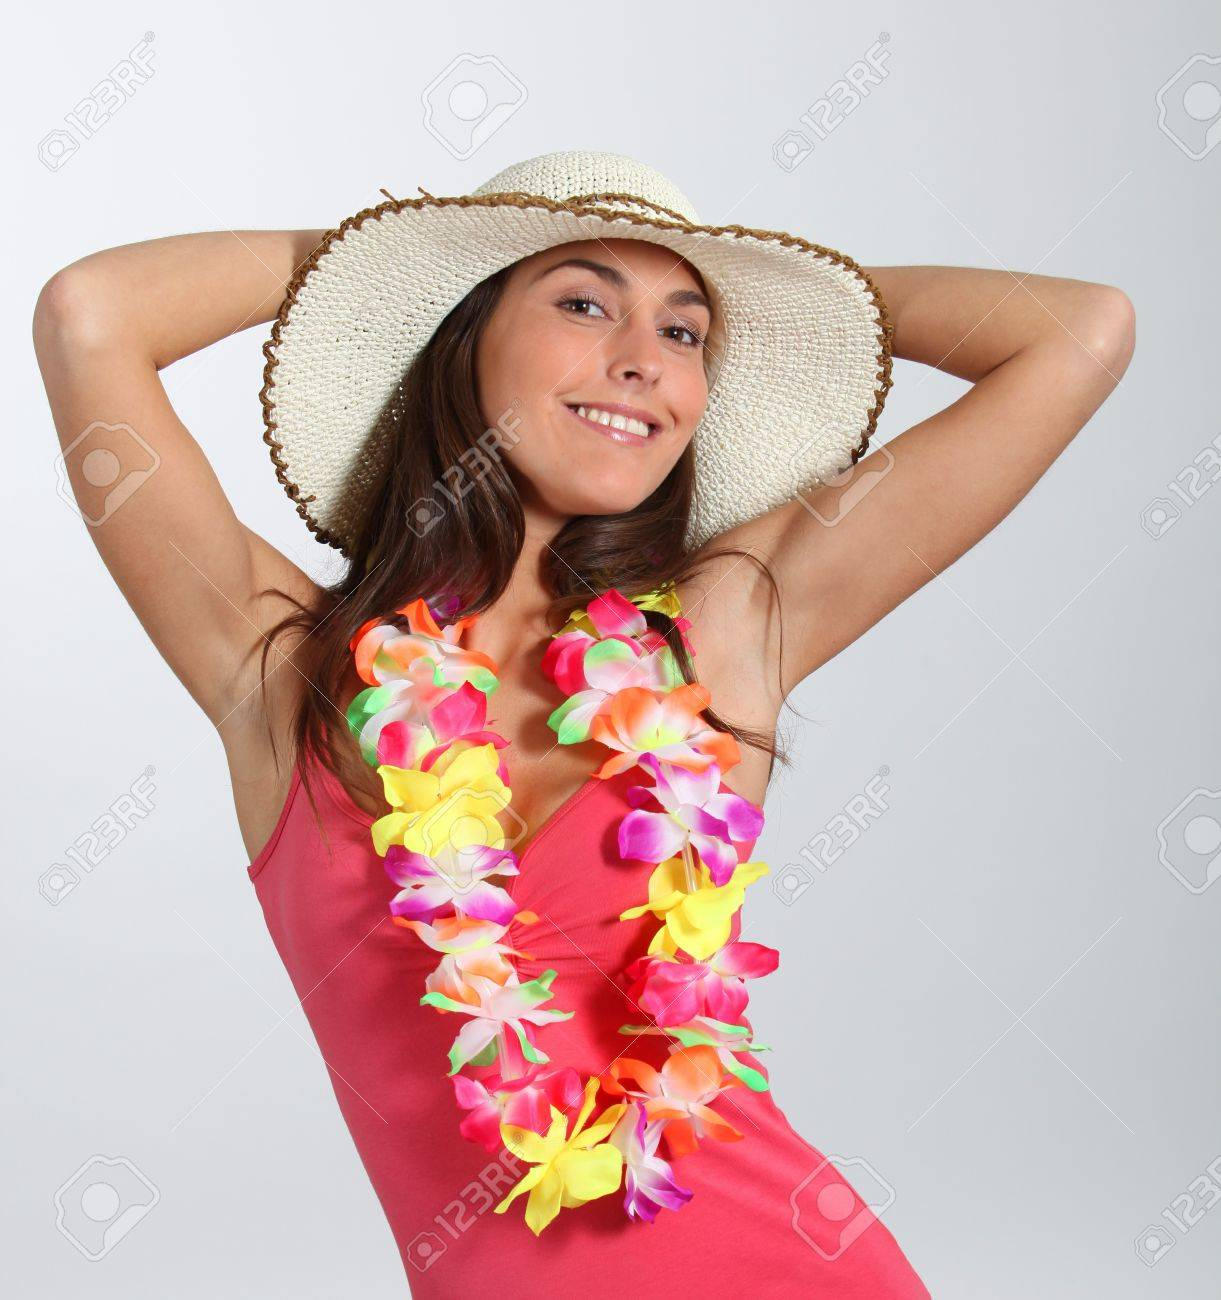 Woman with hawaiian outfit Stock Photo - 8374529